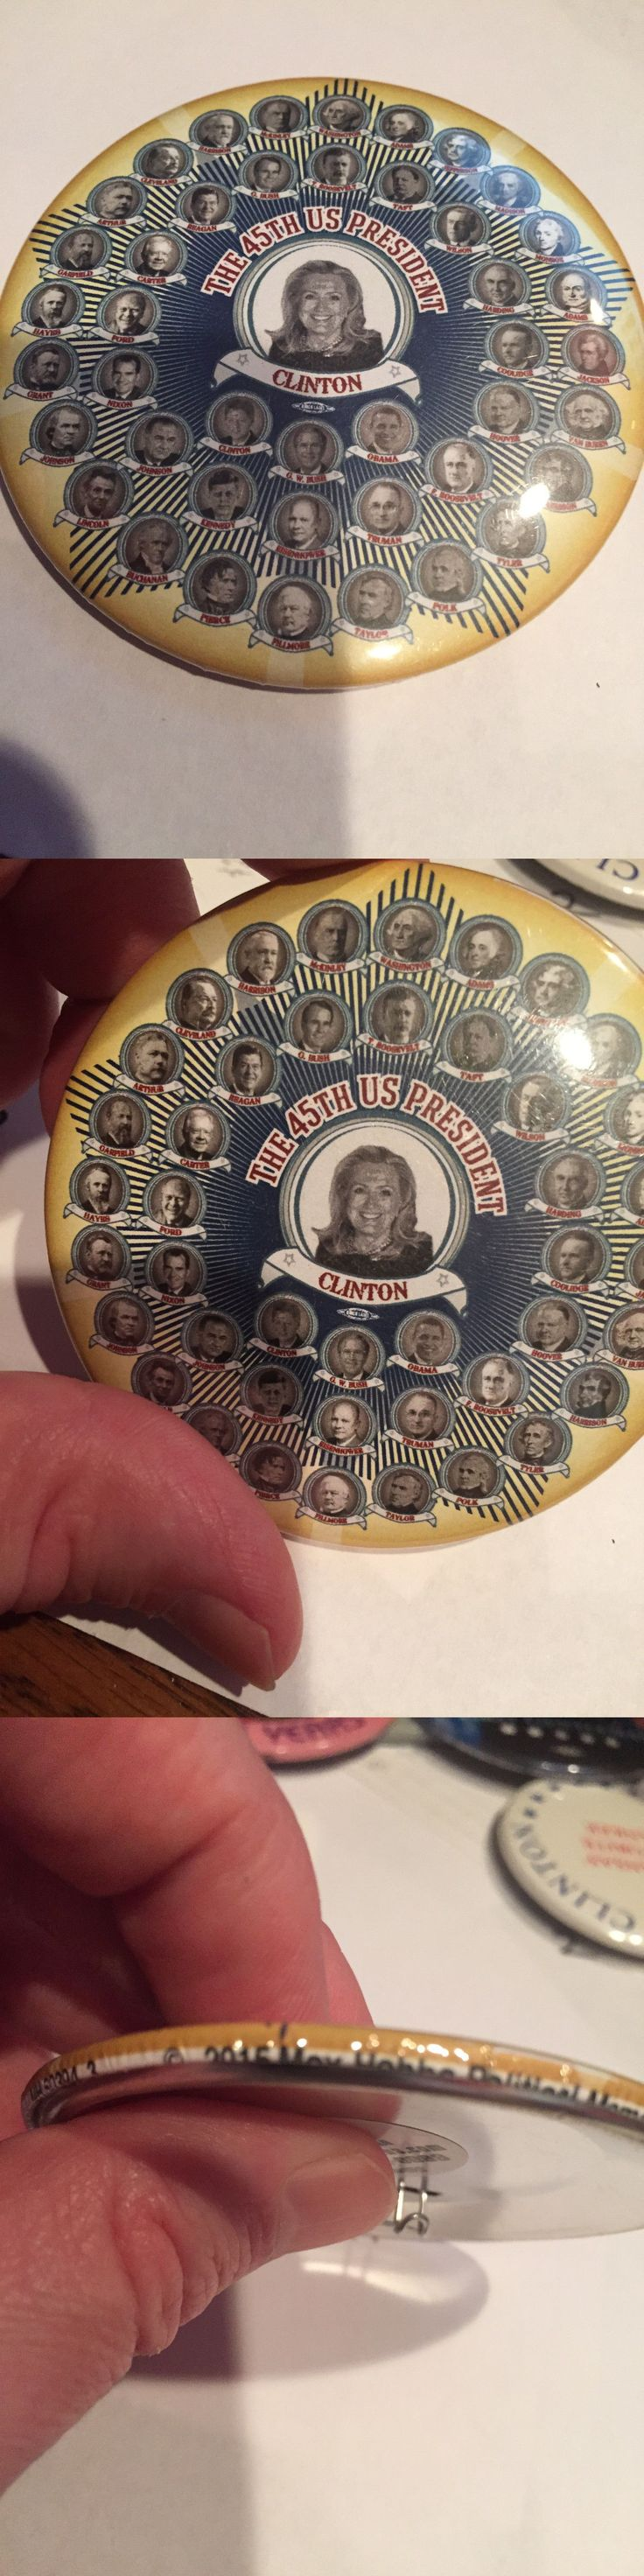 Hillary Clinton: Official Hillary Clinton 45Th Us President 2016 Button Pin W/ All Presidents -> BUY IT NOW ONLY: $15.75 on eBay!